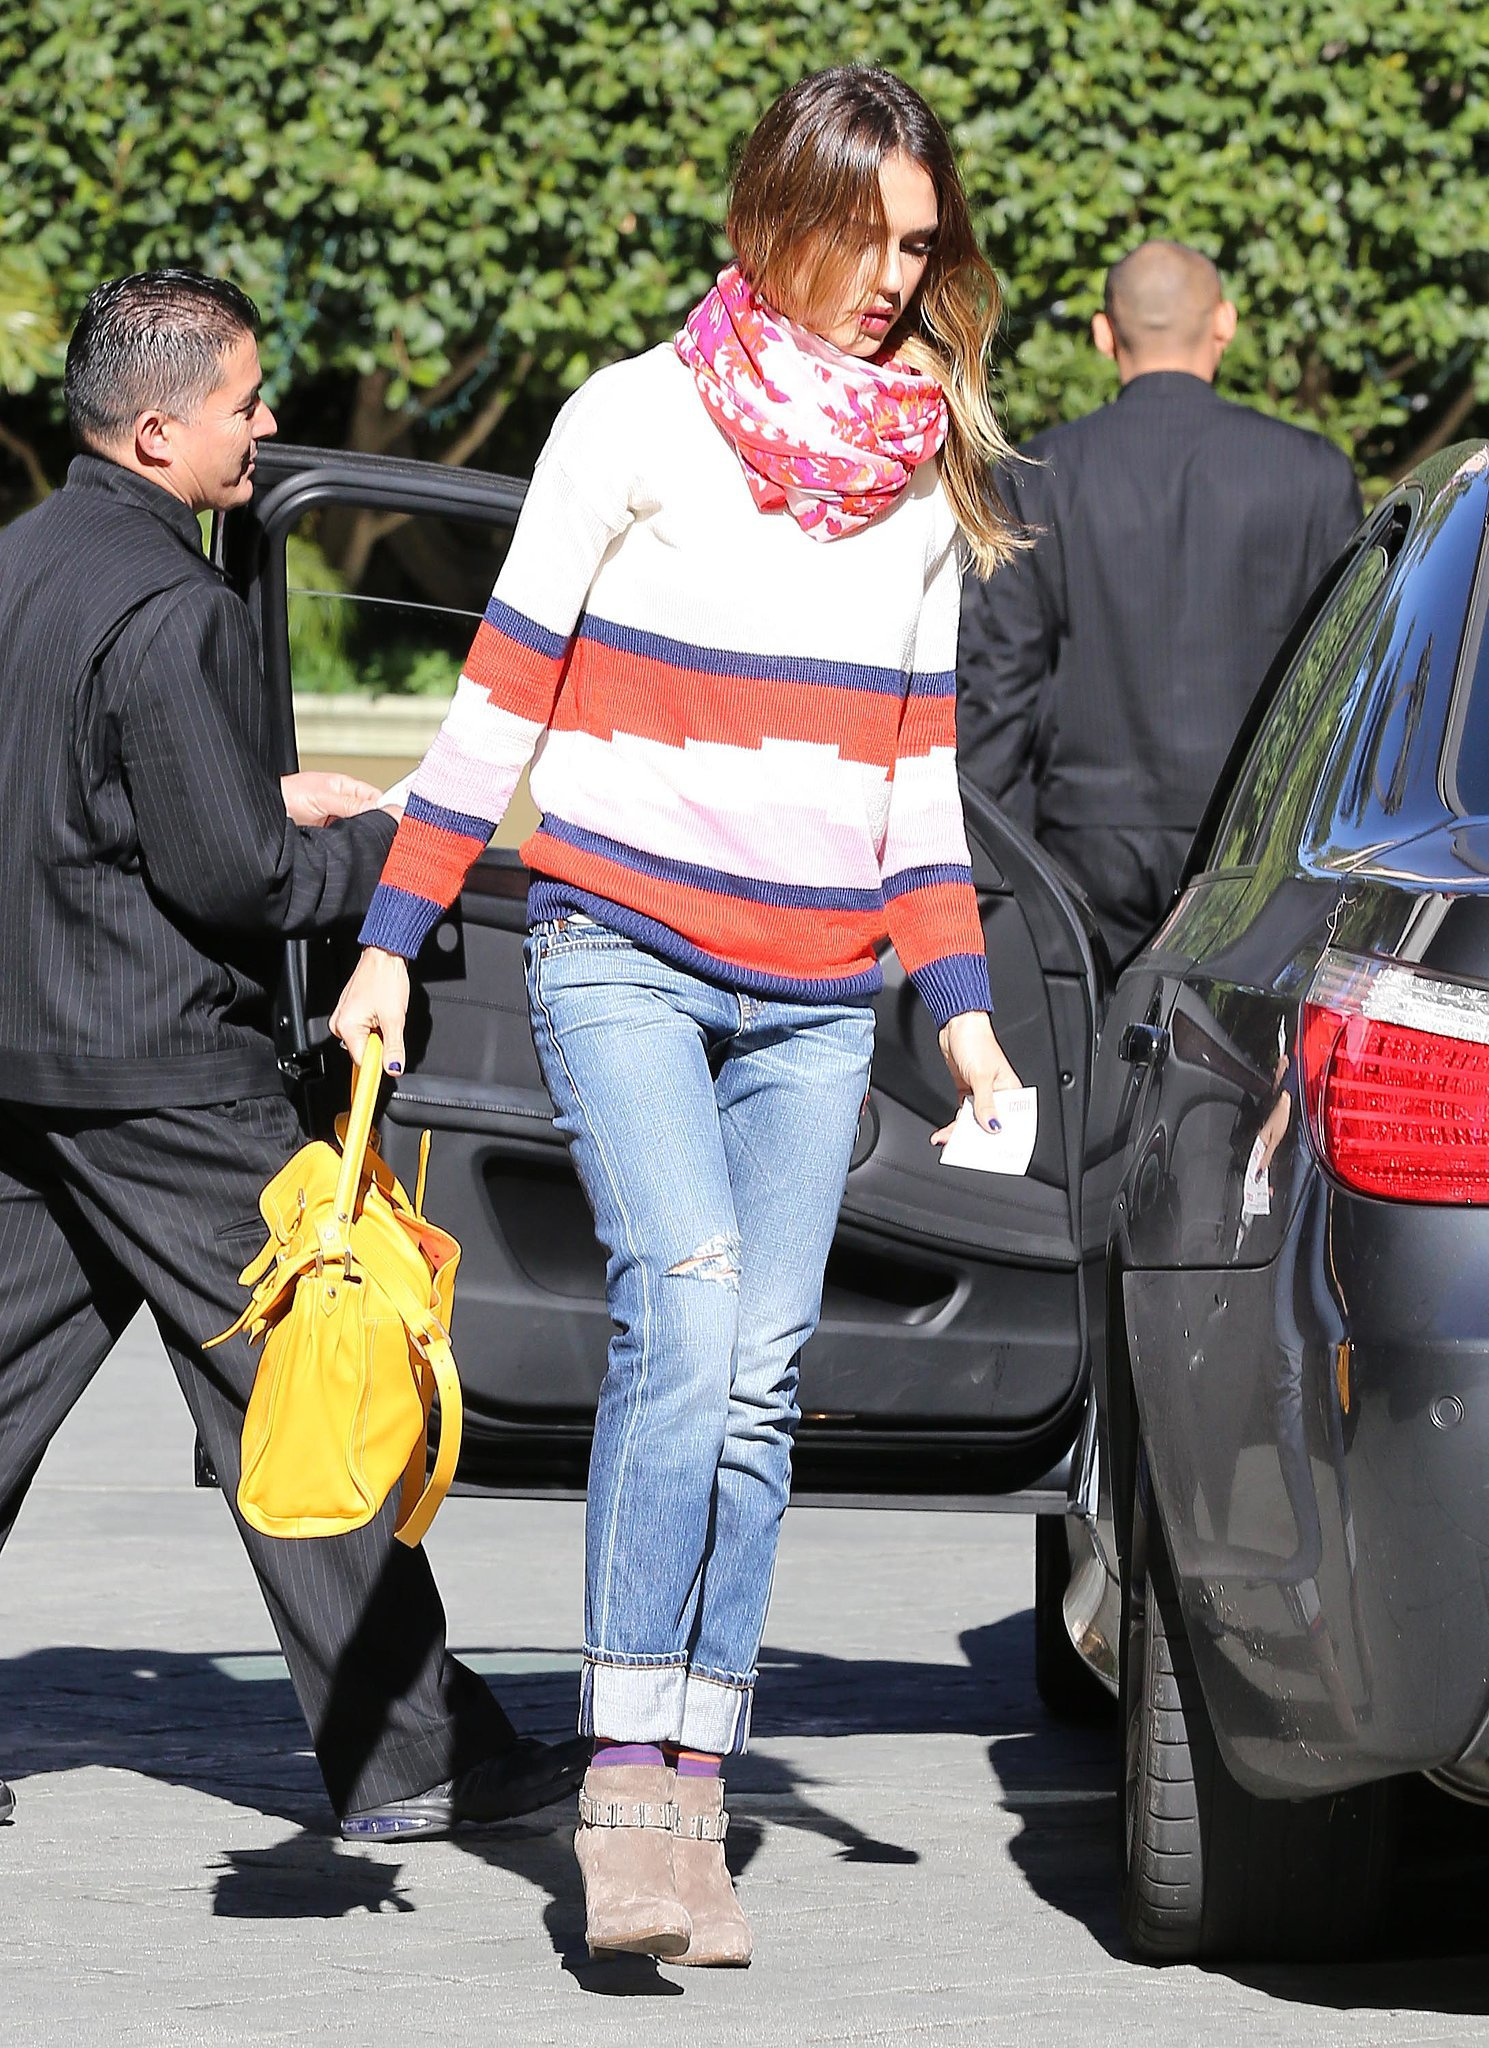 The actress stepped out in LA, working a colorful striped sweater, ripped Level 99 denim, and suede buckled ankle boots. As if her off-duty style wasn't cool enough, she accessorized with a pink-and-orange Theodora & Callum scarf, a yellow Longchamp tote, and purple ankle socks for extra flair.